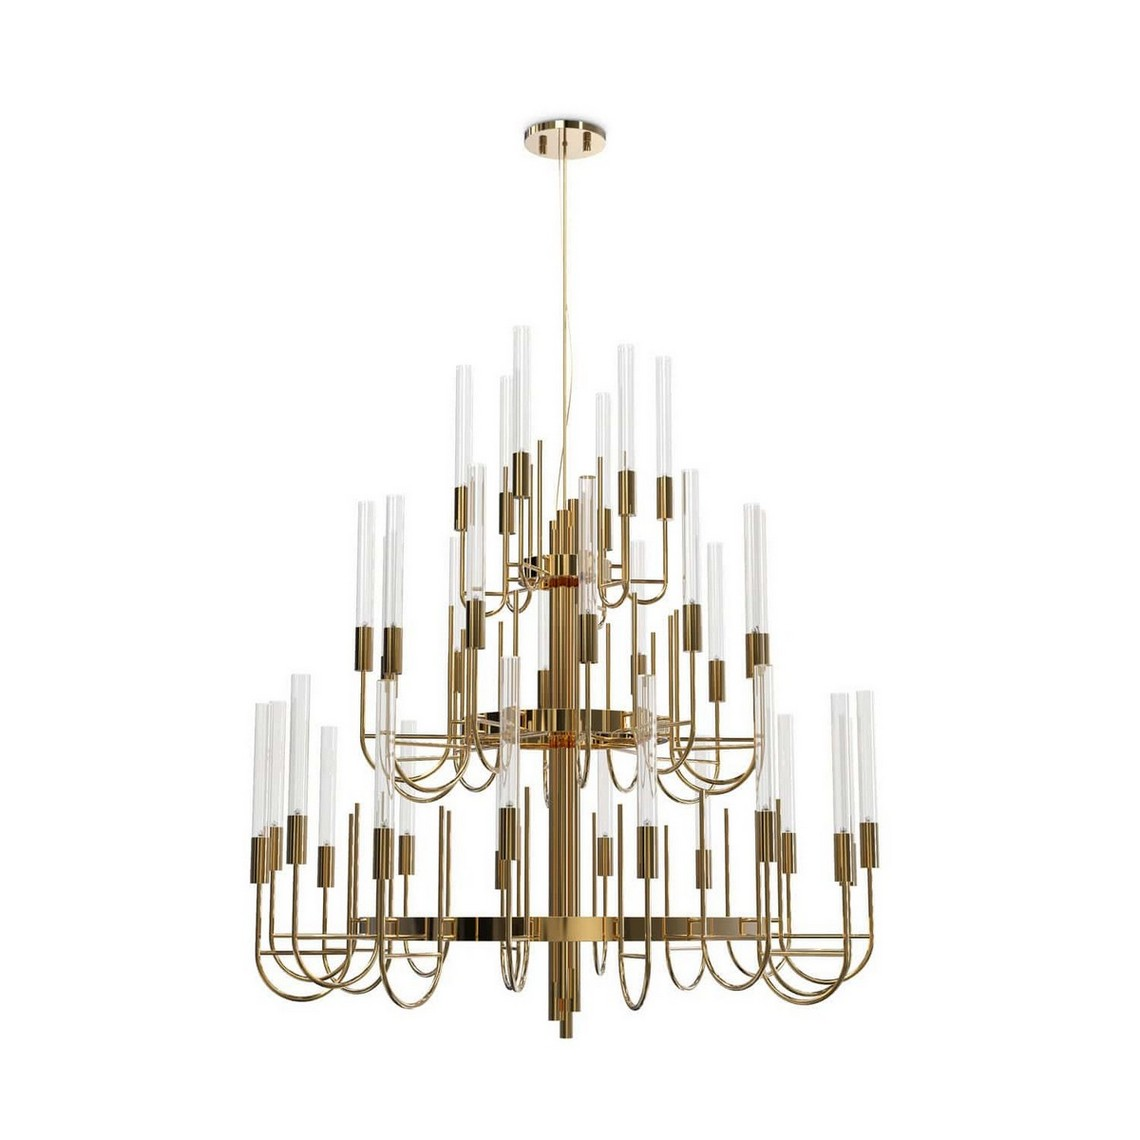 7 Luxury Chandeliers You Will Love luxury chandeliers 7 Luxury Chandeliers You Will Love gala2